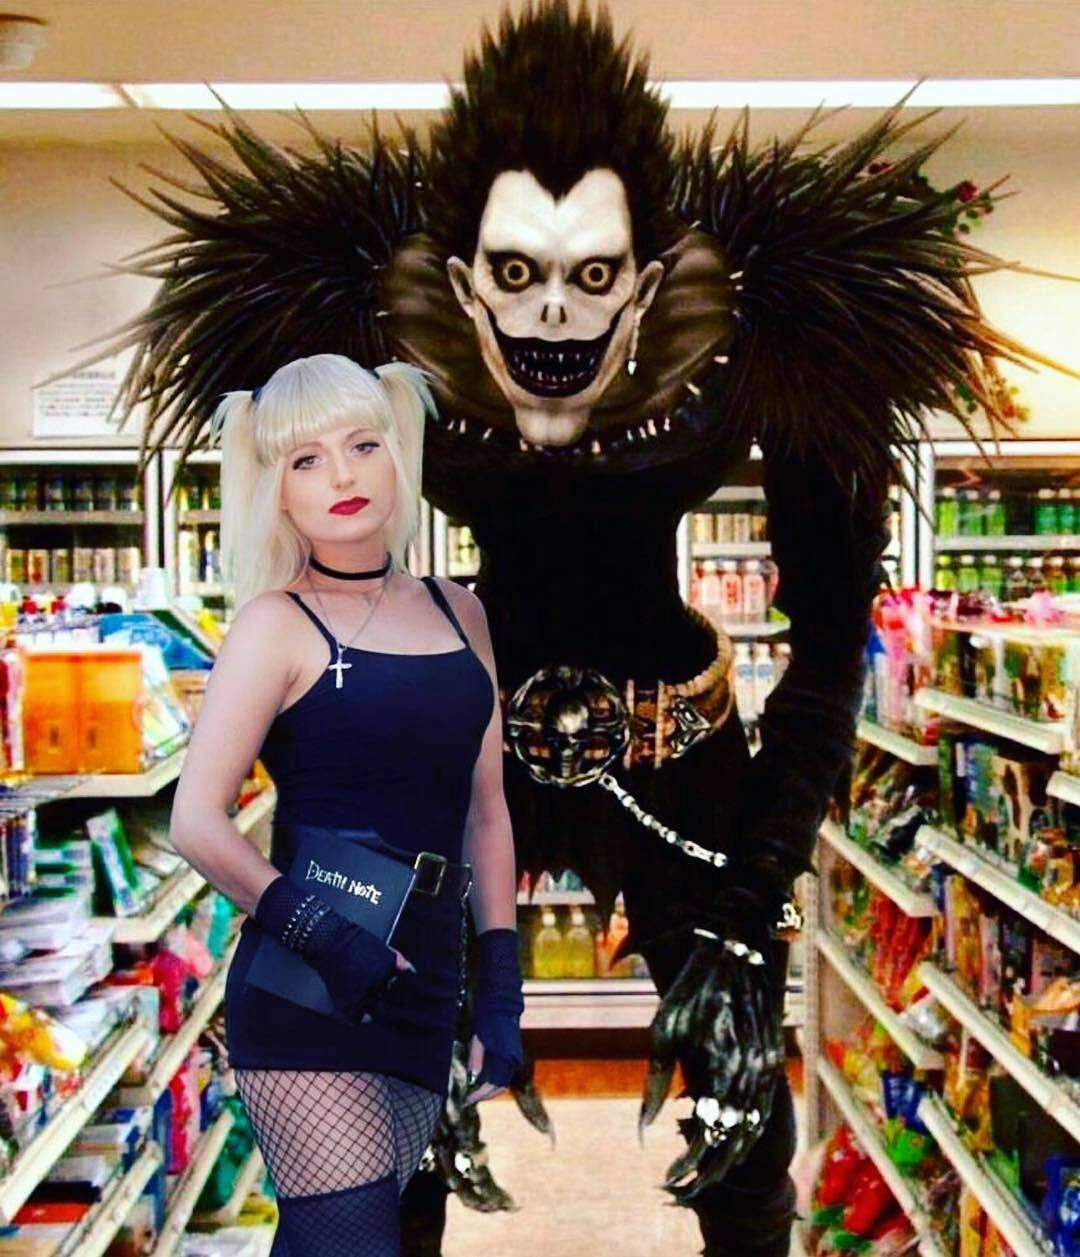 miss amane and ryuuk from death note | cosplay | pinterest | cosplay